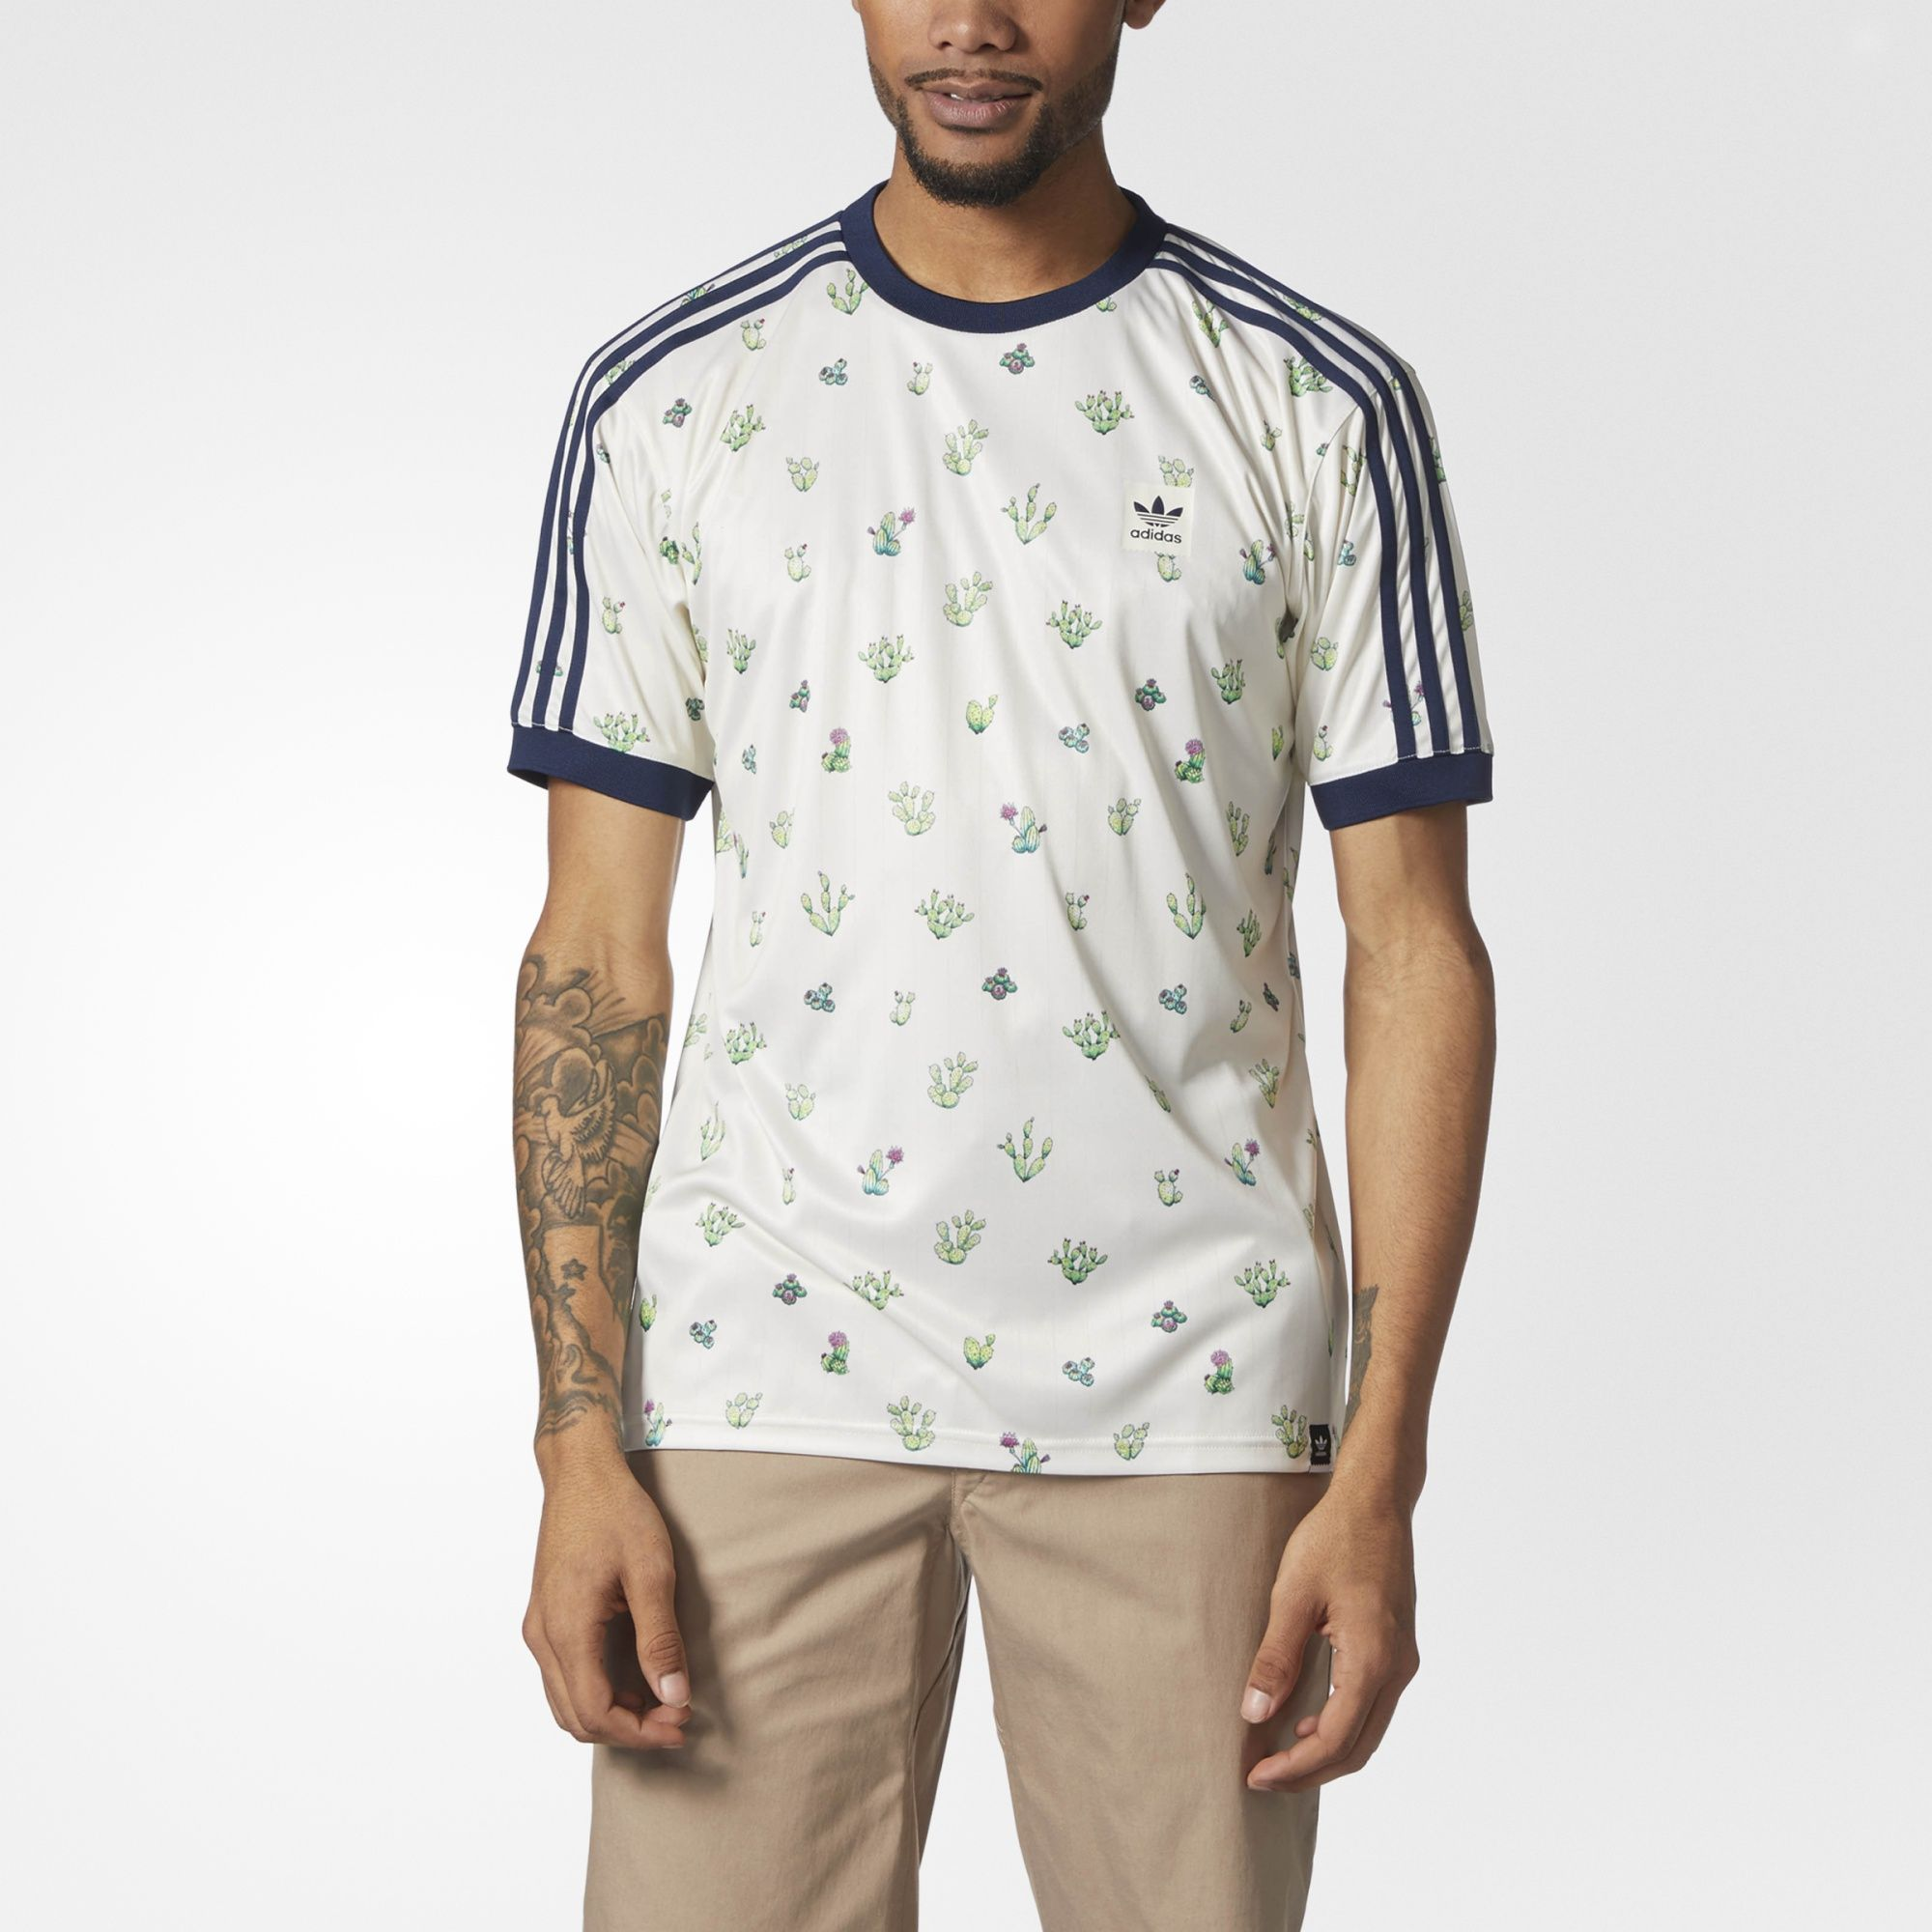 f14925ac097840 A soft jersey tee with a spiny look, this men's skate t-shirt flashes an  allover cactus print. 3-Stripes down the shoulders and an adidas Trefoil  logo over ...